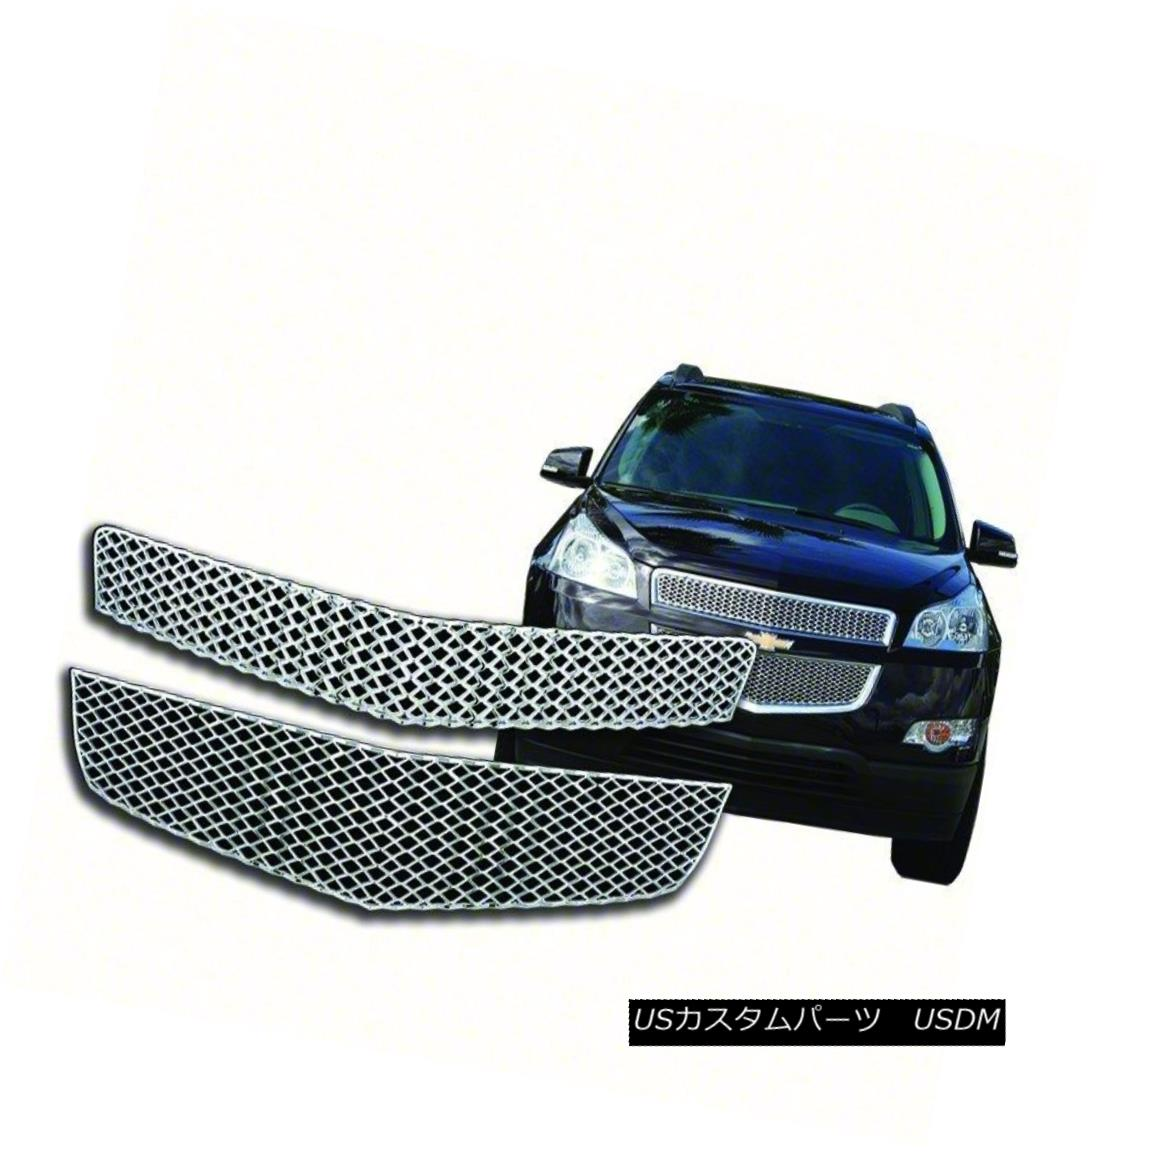 グリル Fits 2009-12 Chevy Traverse-2pc Chrome Grille Overlay-IWCGI75 フィット2009-12 Chevy Traverse-2pcクロムグリルオーバーレイ-IWCGI7 5